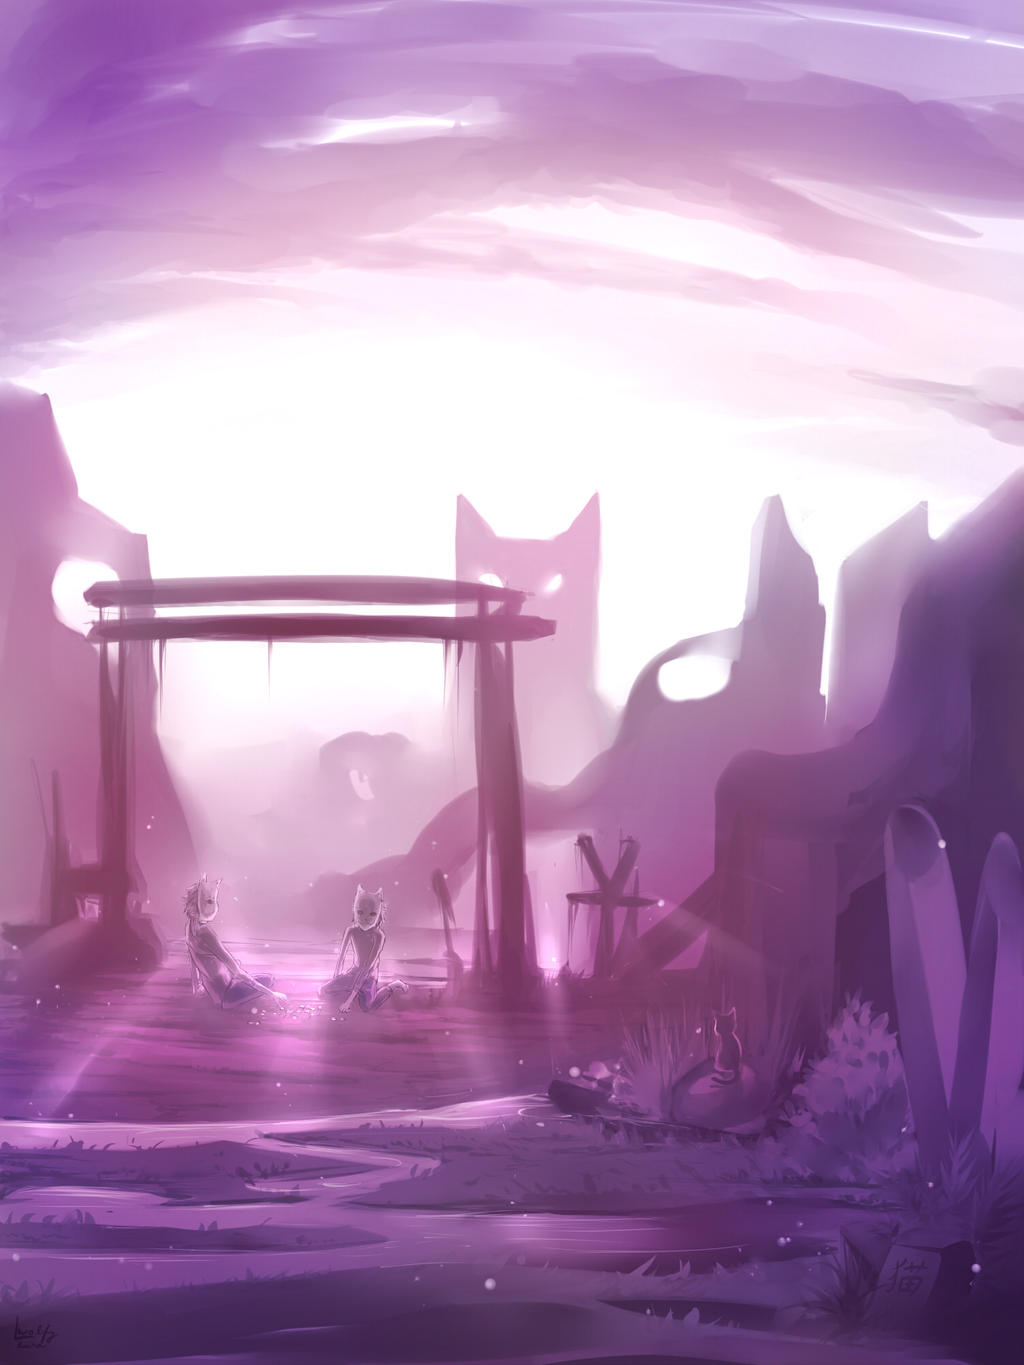 The world where we live all alone together by wolfyLRiina